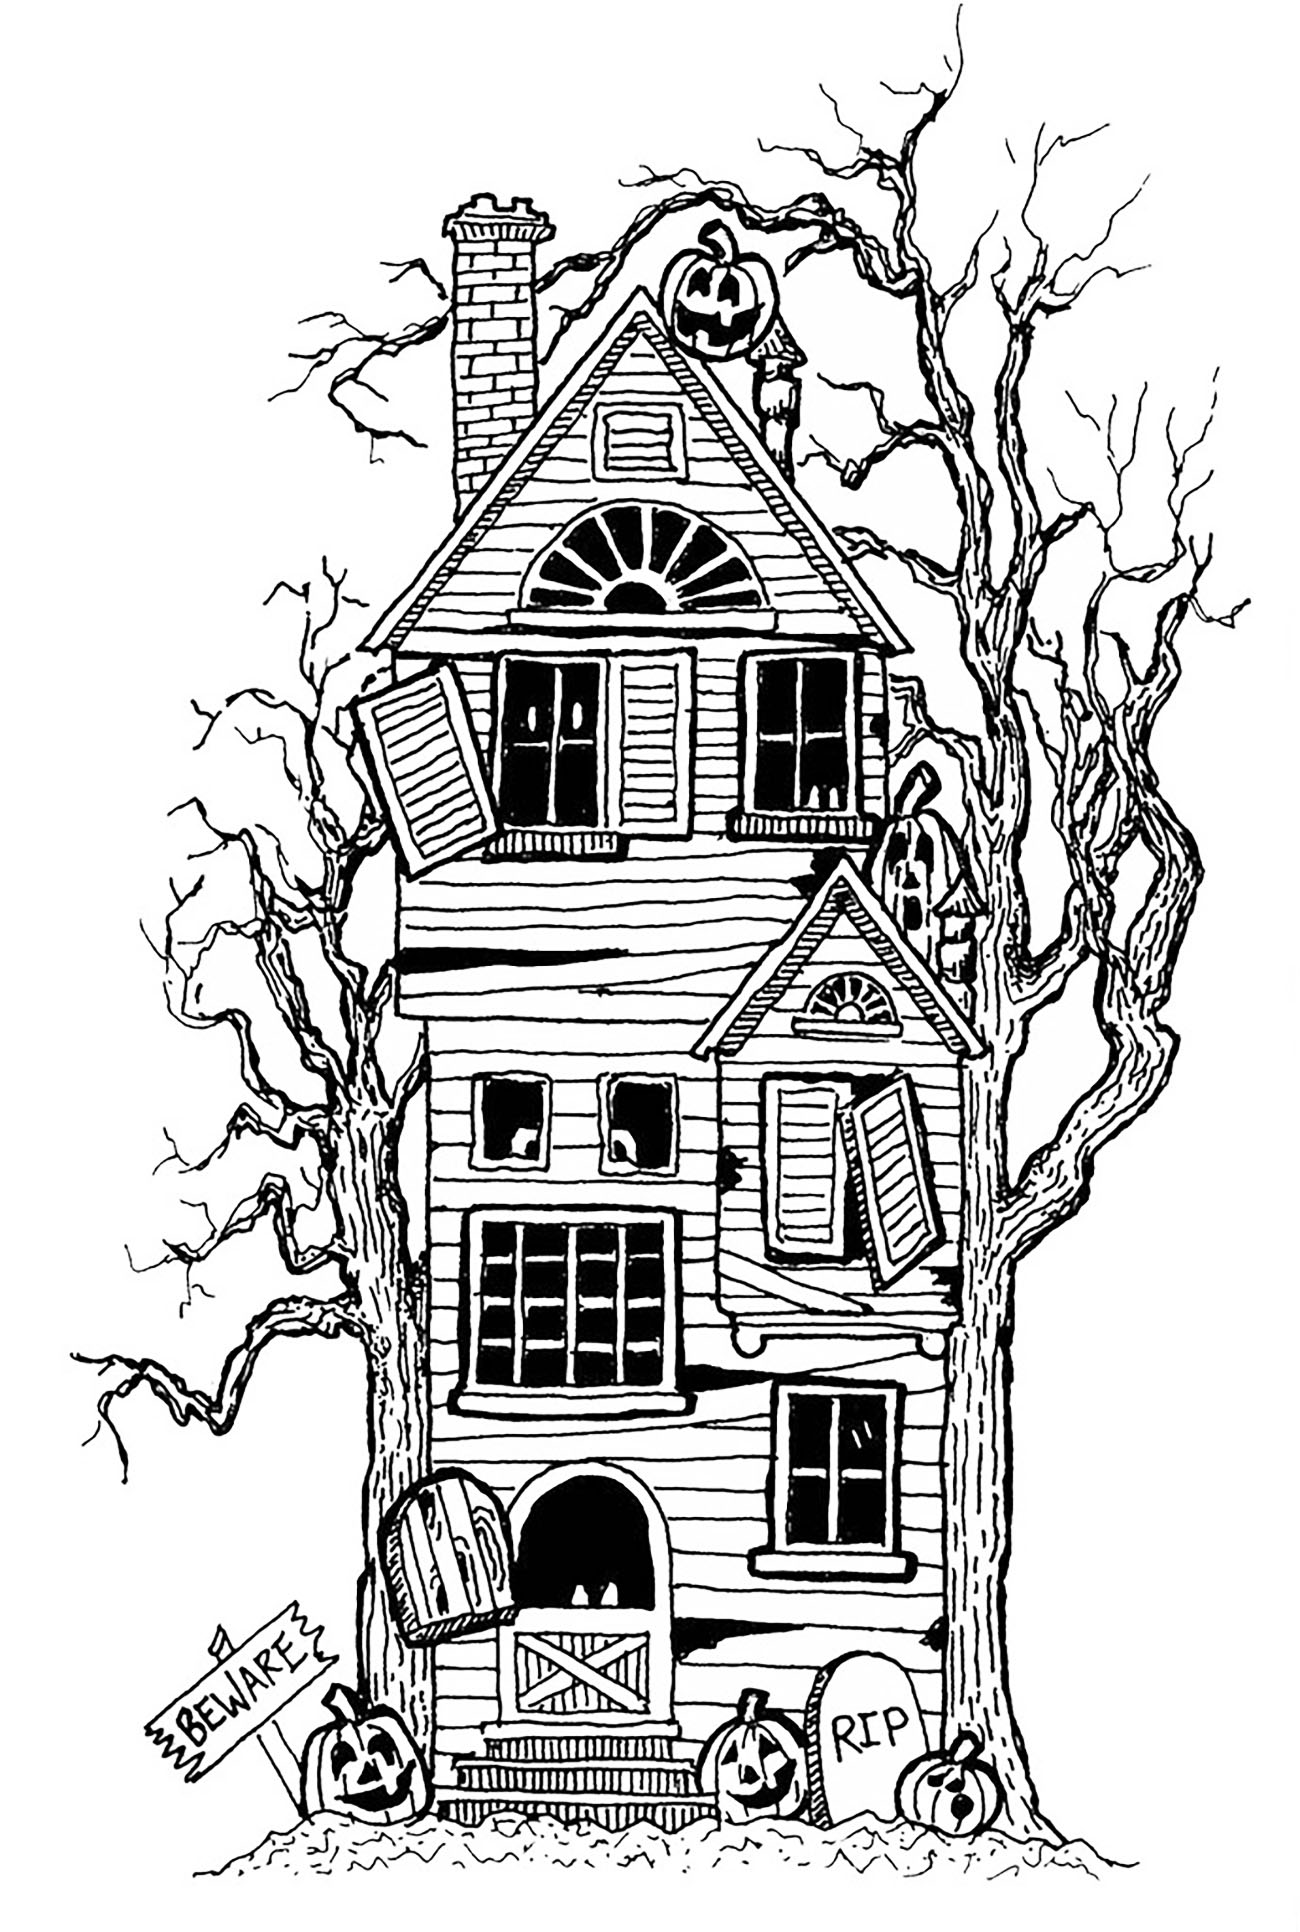 Coloring pictures for adults - Coloring Adult Halloween Big Haunted House Free To Print